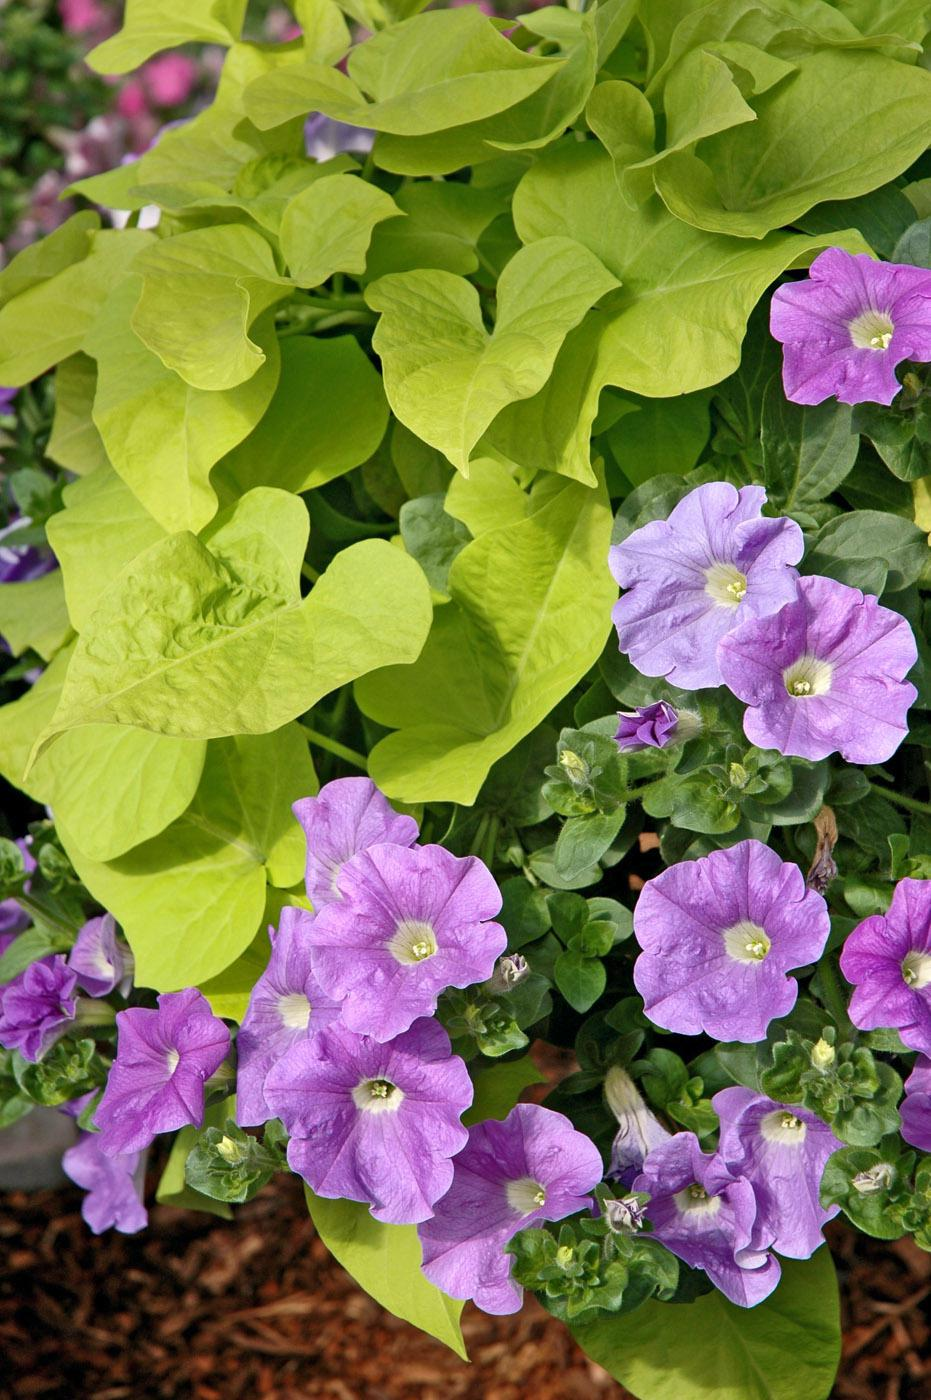 This Sky Blue Surfinia petunia partners well with a Desana Lime sweet potato. Together they will fill and spill over this container's sides all summer long. (Photos by Norman Winter)